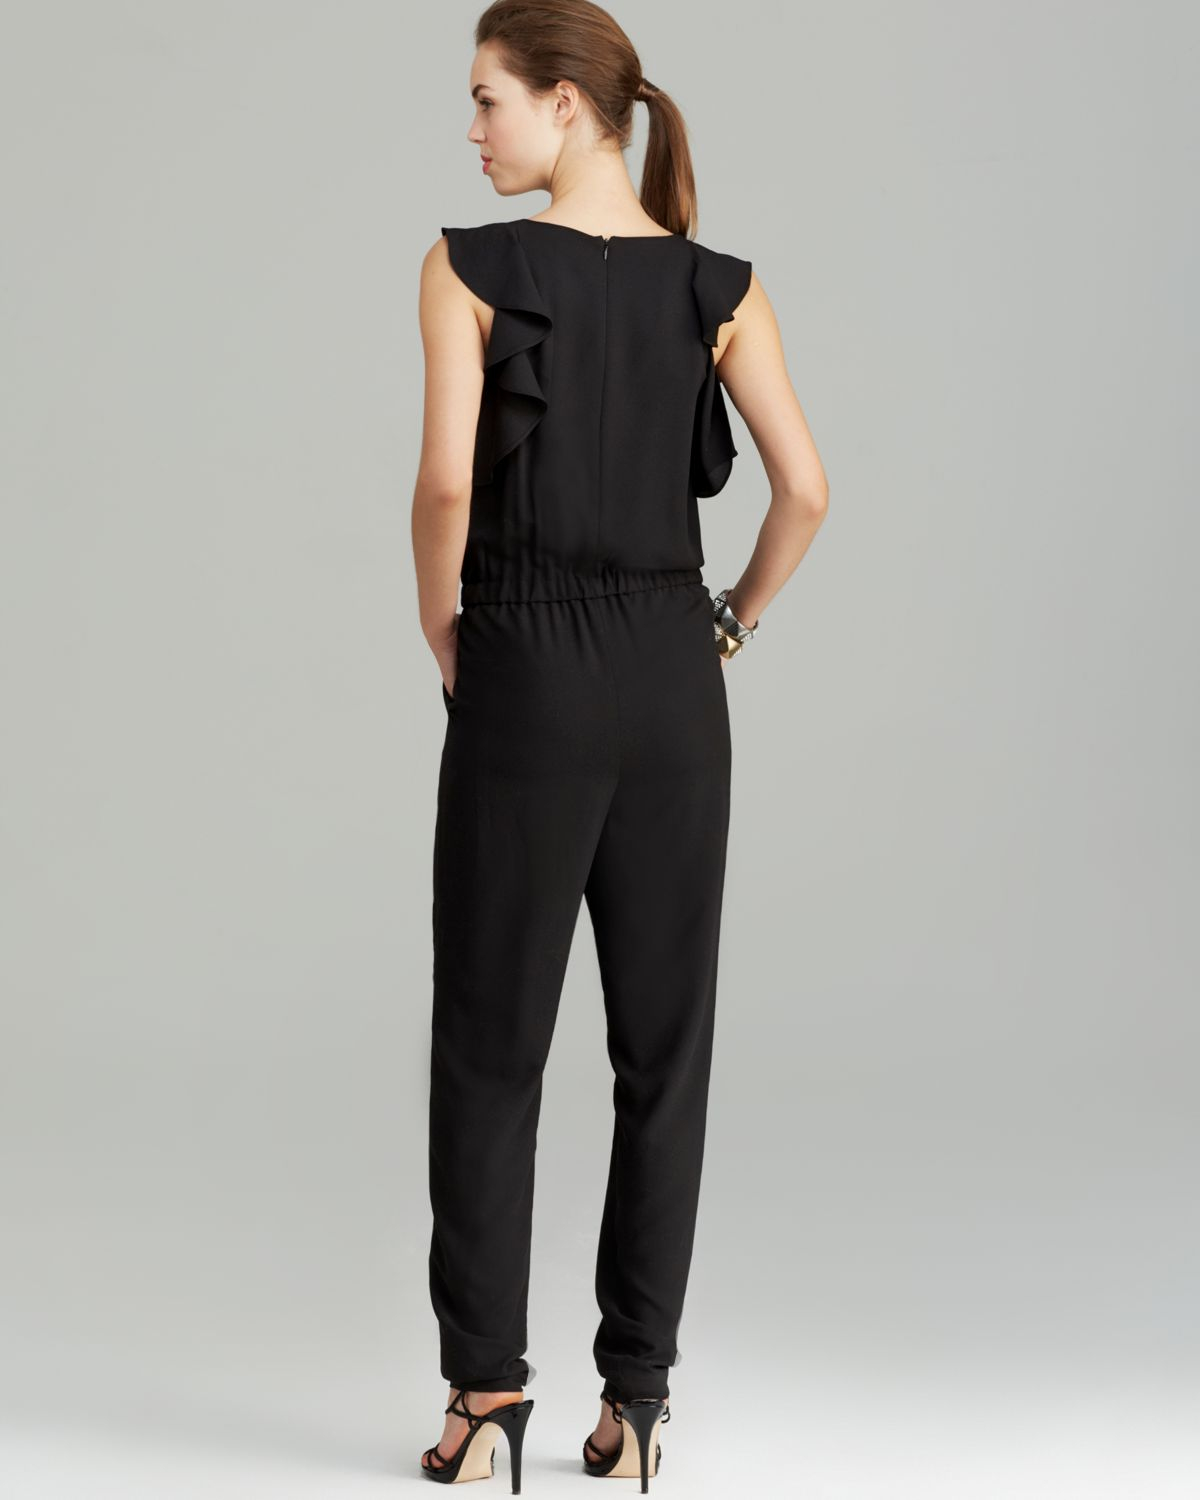 bafb21439a8d Lyst - Shoshanna Sleeveless Ruffle-side Jumpsuit in Black